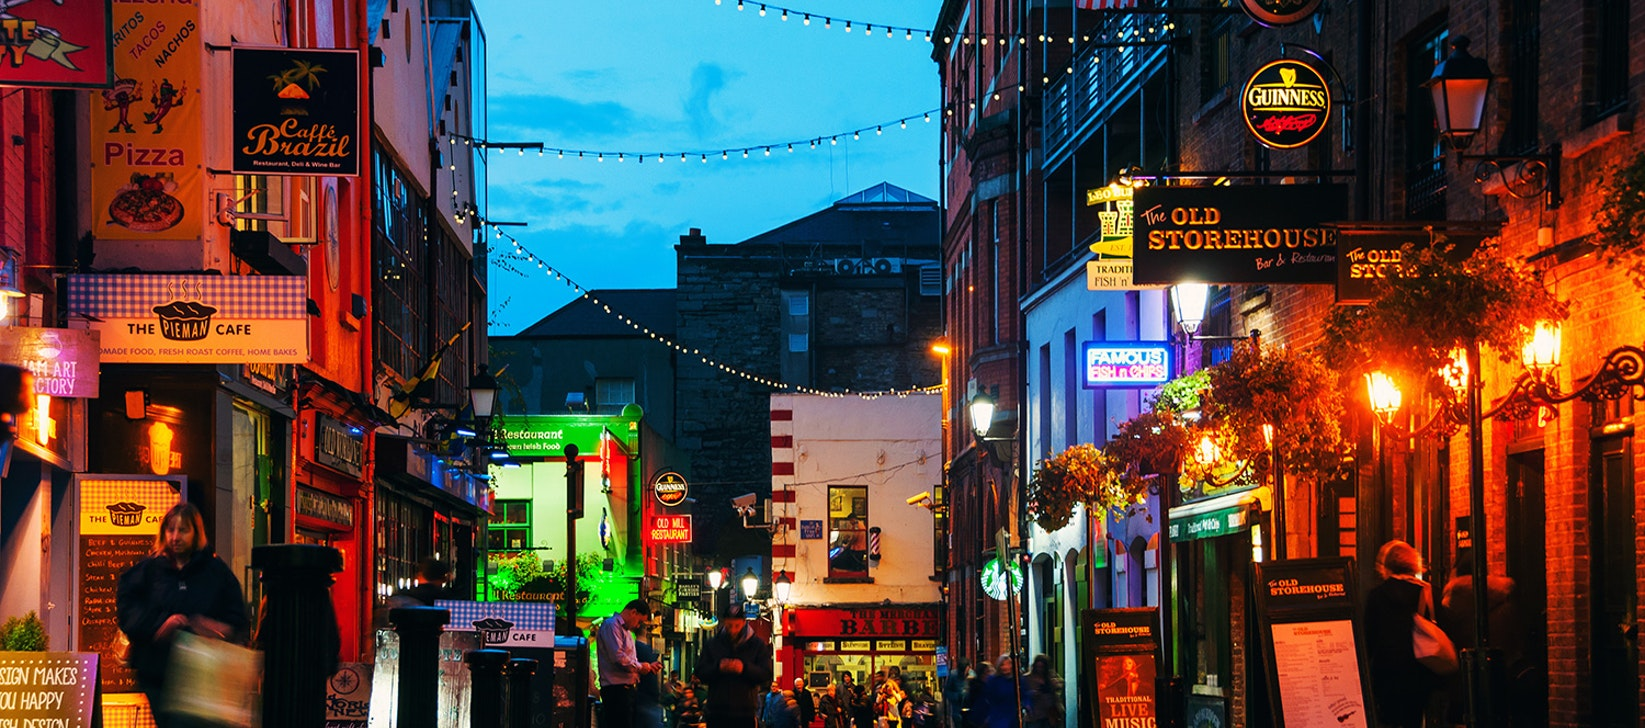 Survey shows that Dubliners rank the city's nightlife poorly versus its European peers